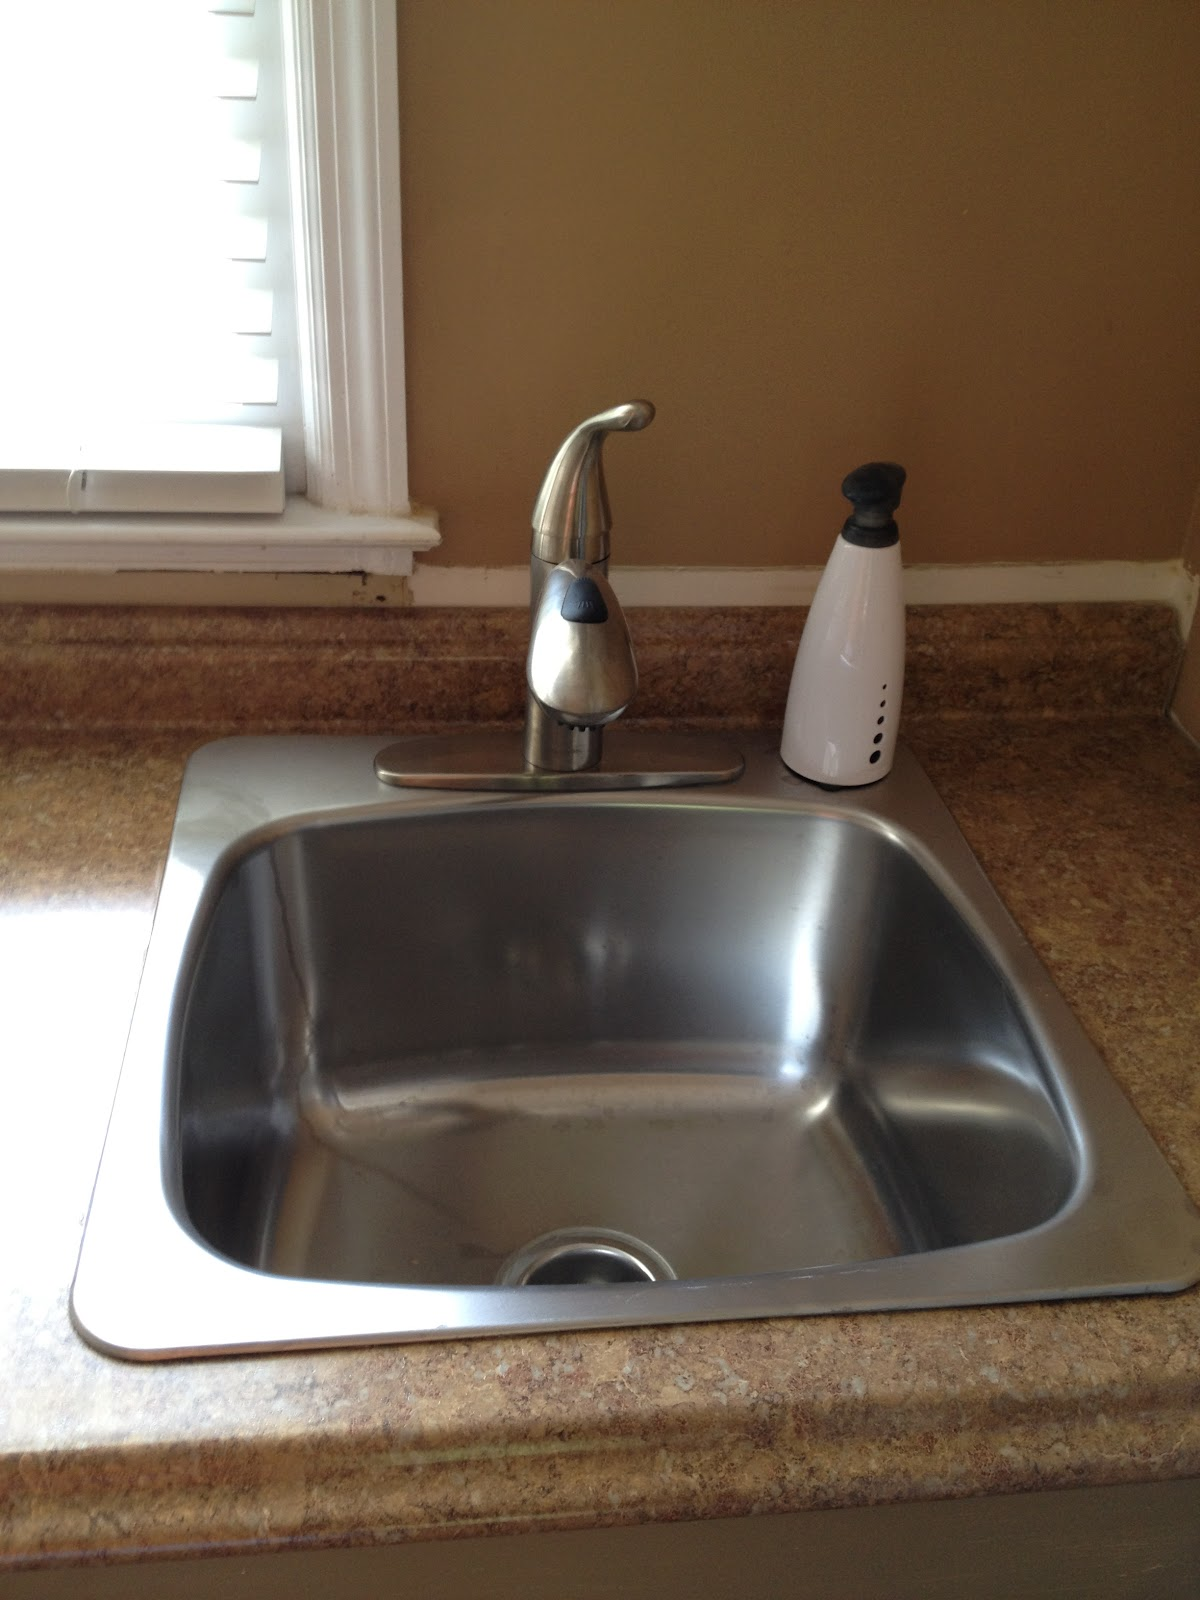 Laundry Sink Countertop : CasaLupoli: Laundry Room Update: The Sink and CounterTop